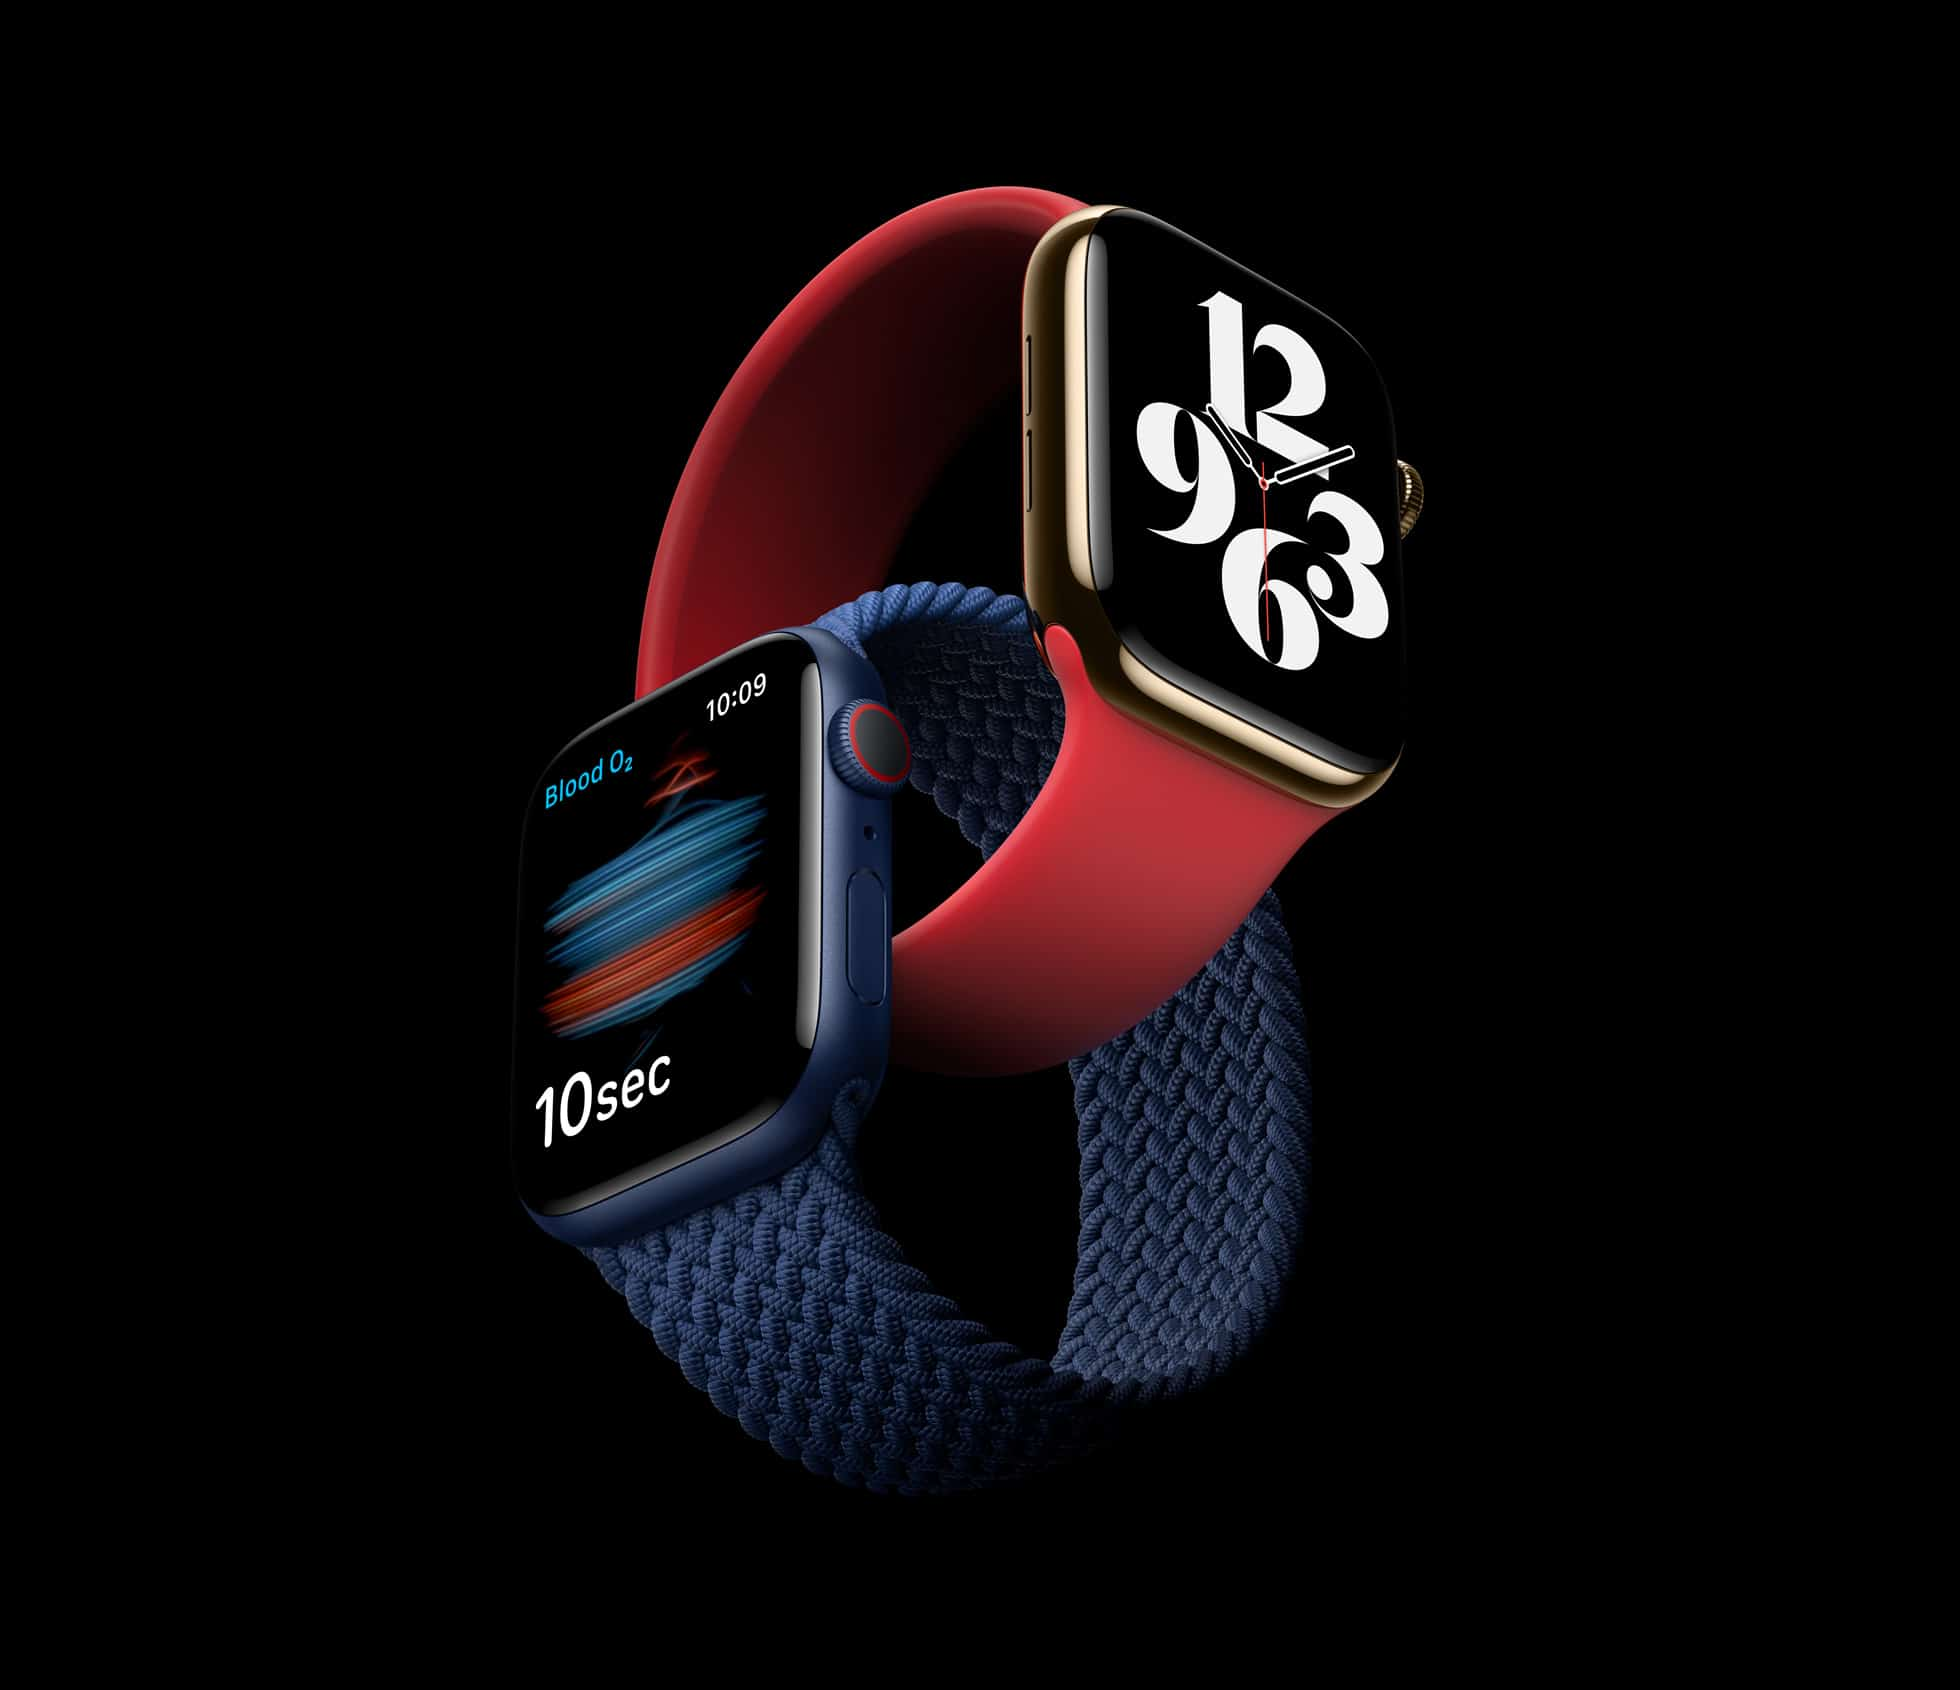 Apple Watch Series 6 hero